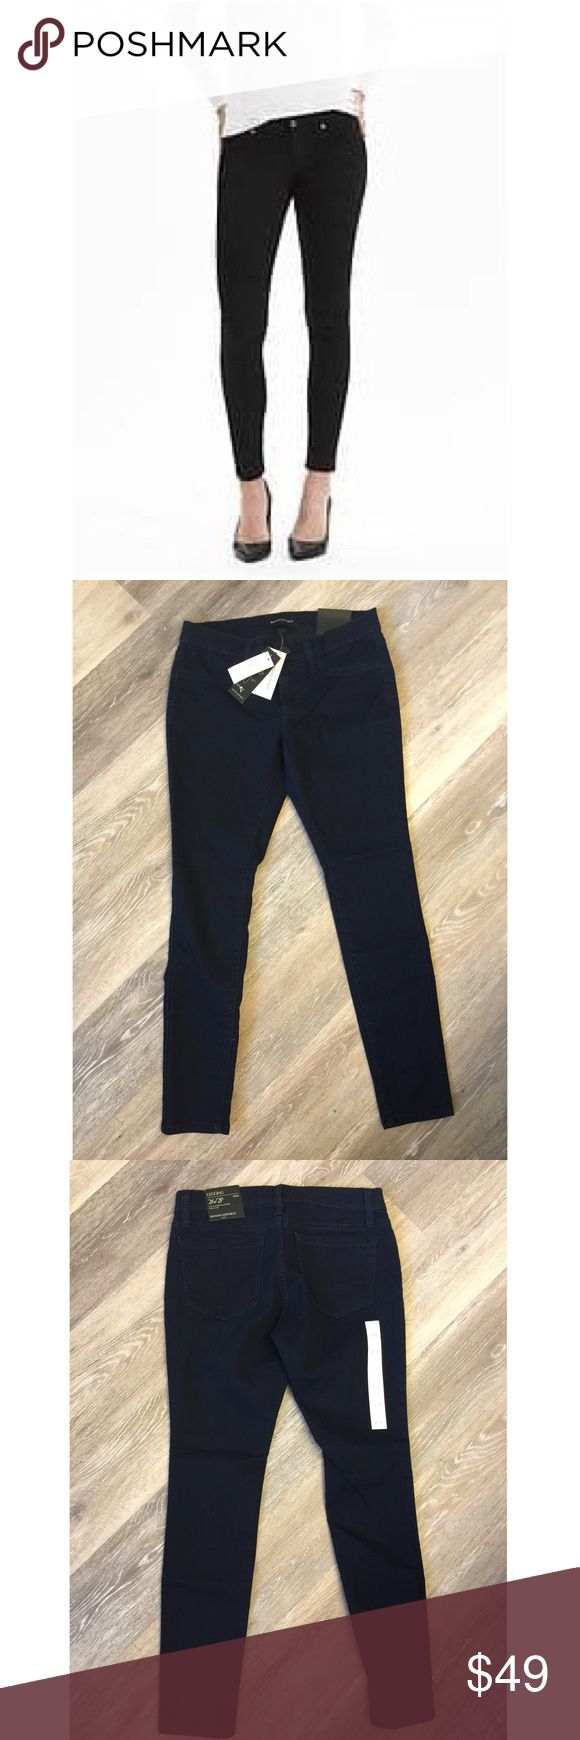 """BANANA REPUBLIC BLACK JEAN LEGGINGS NWT🔹Black Banana Republic Jean Leggings. 🔹2 back pockets 🔹Fitted through hip and thigh🔹Fabric: 80% cotton, 18% polyester, 2% spandex🔹Size : 26/2P 26"""" waist, 25"""" inseam, 10"""" rise.🔹NO trades🔹Smoke free home🔹Bundle discount: 10% off two, 15% off three. 🔹Please go visit our wonderful friend Molinda @molinda25 for more Banana Republic beauties and many other treasures. Banana Republic Pants"""